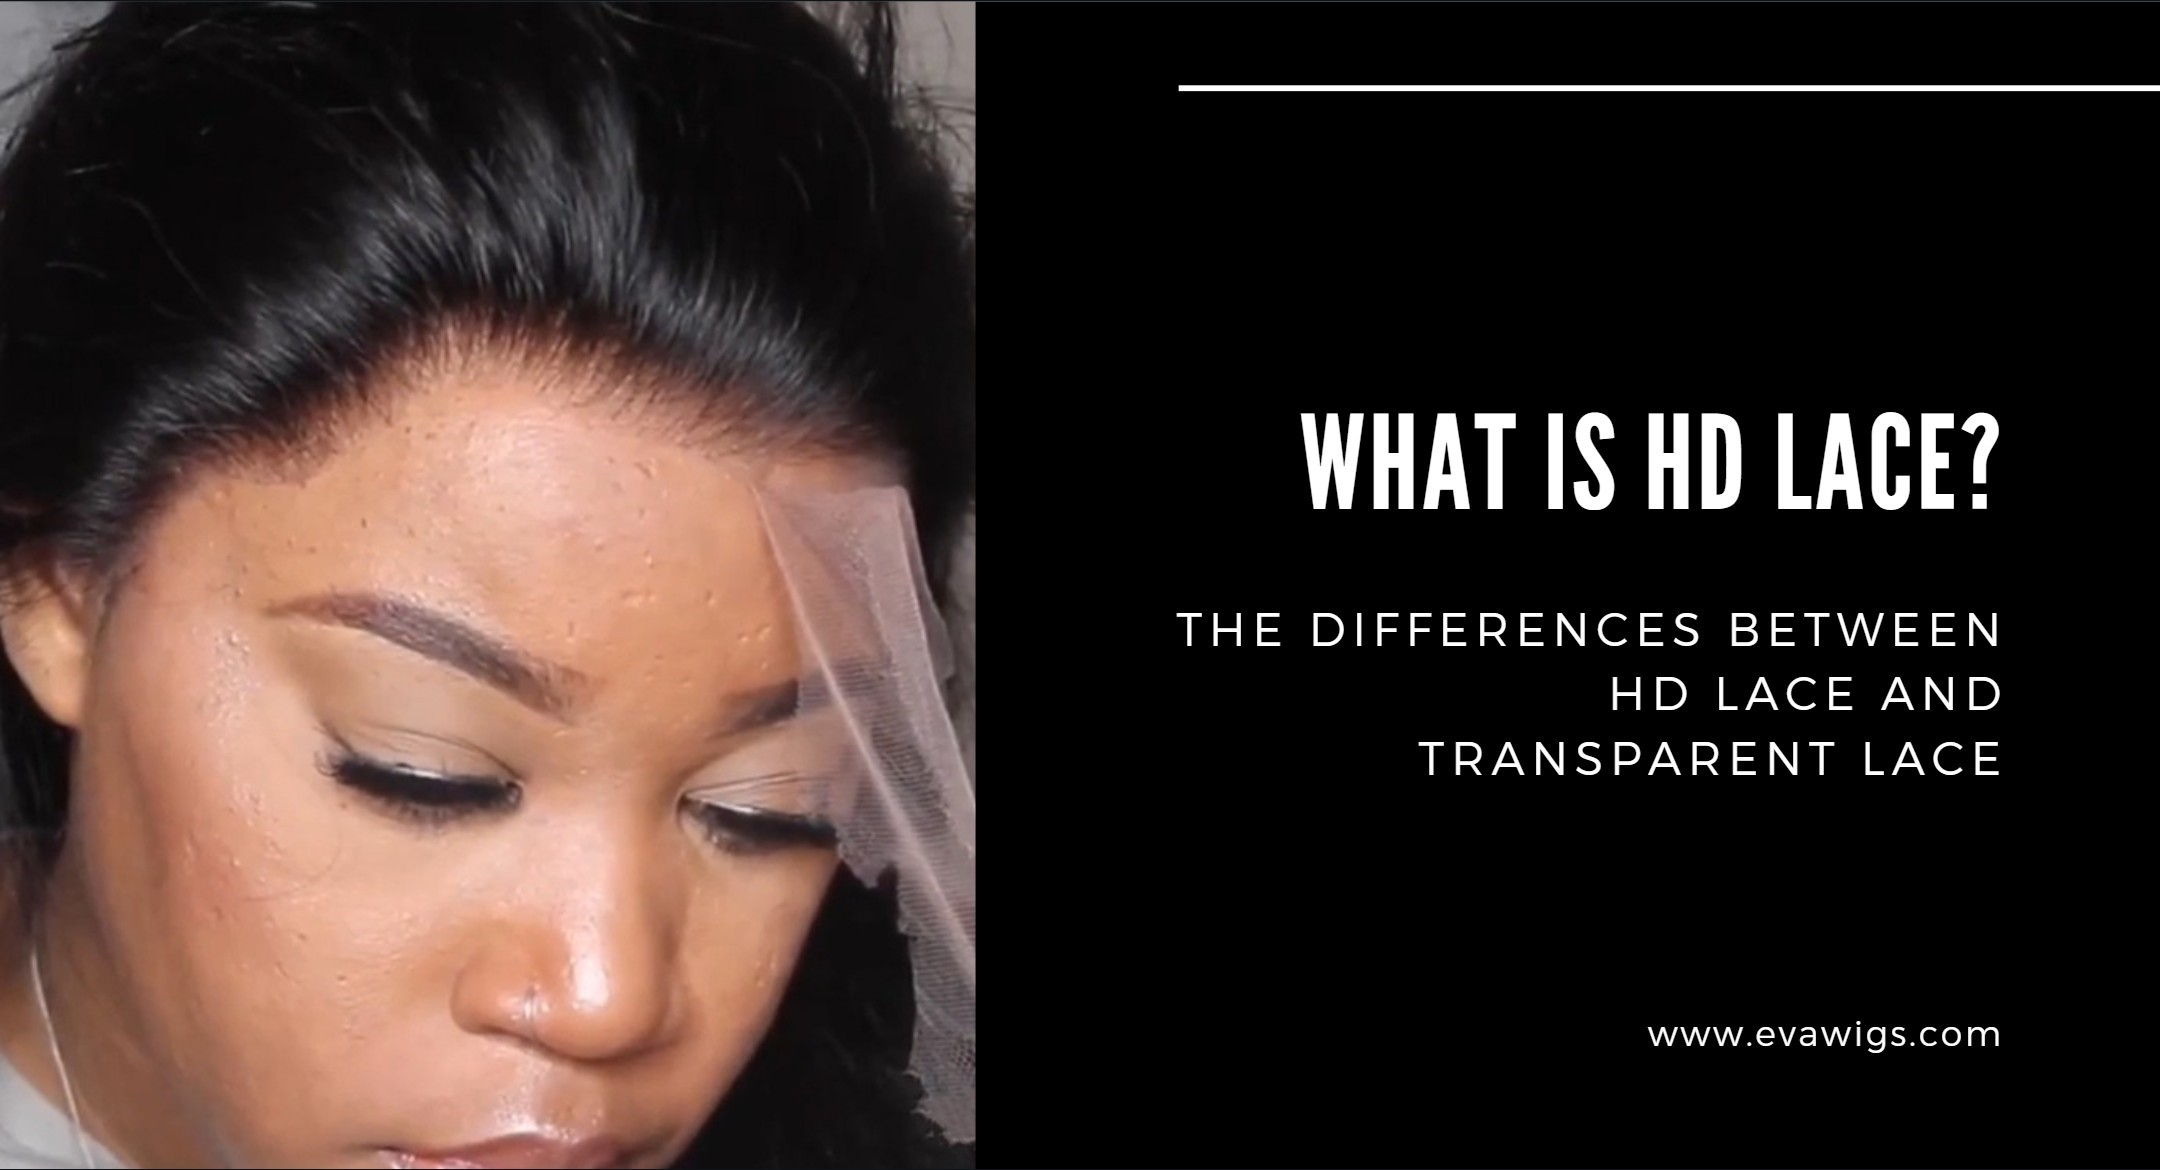 What is HD Lace? What is Transparent Lace? What's the Difference between Normal Lace and HD Lace? And What's the Difference Between HD Lace and Transparent Lace?